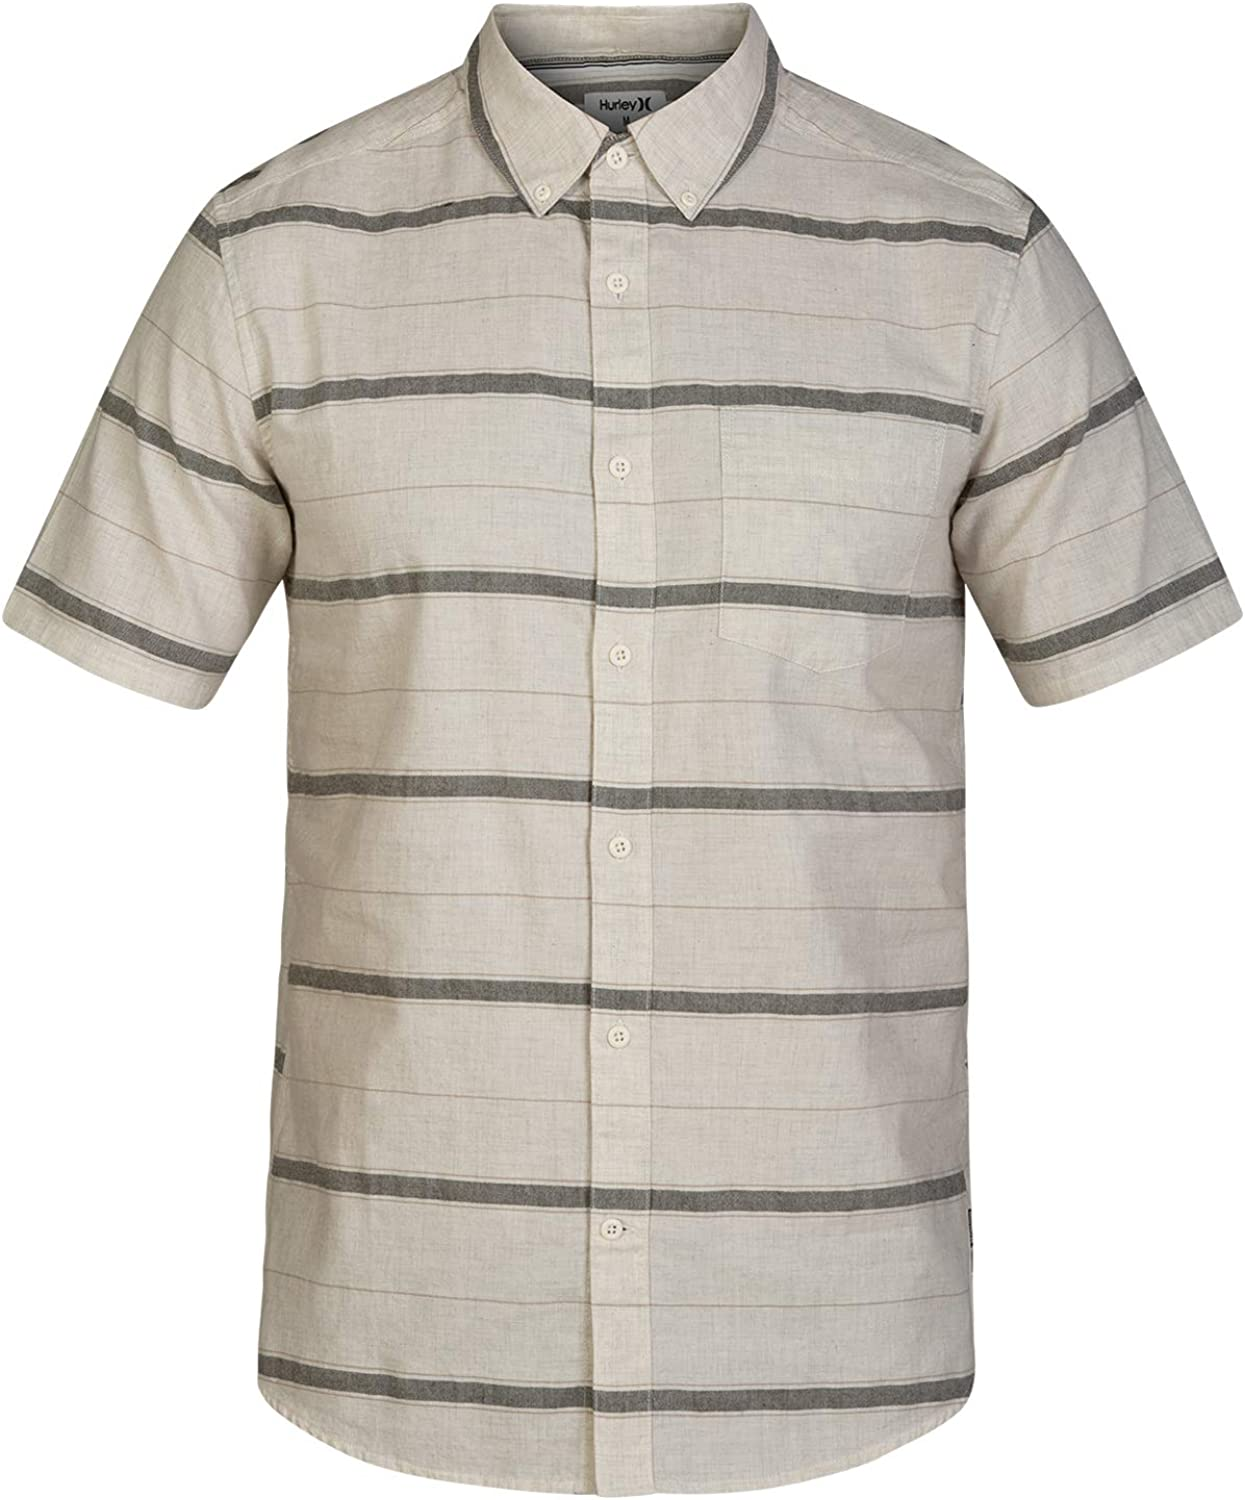 Hurley Mens Thompson Stretch Shirt